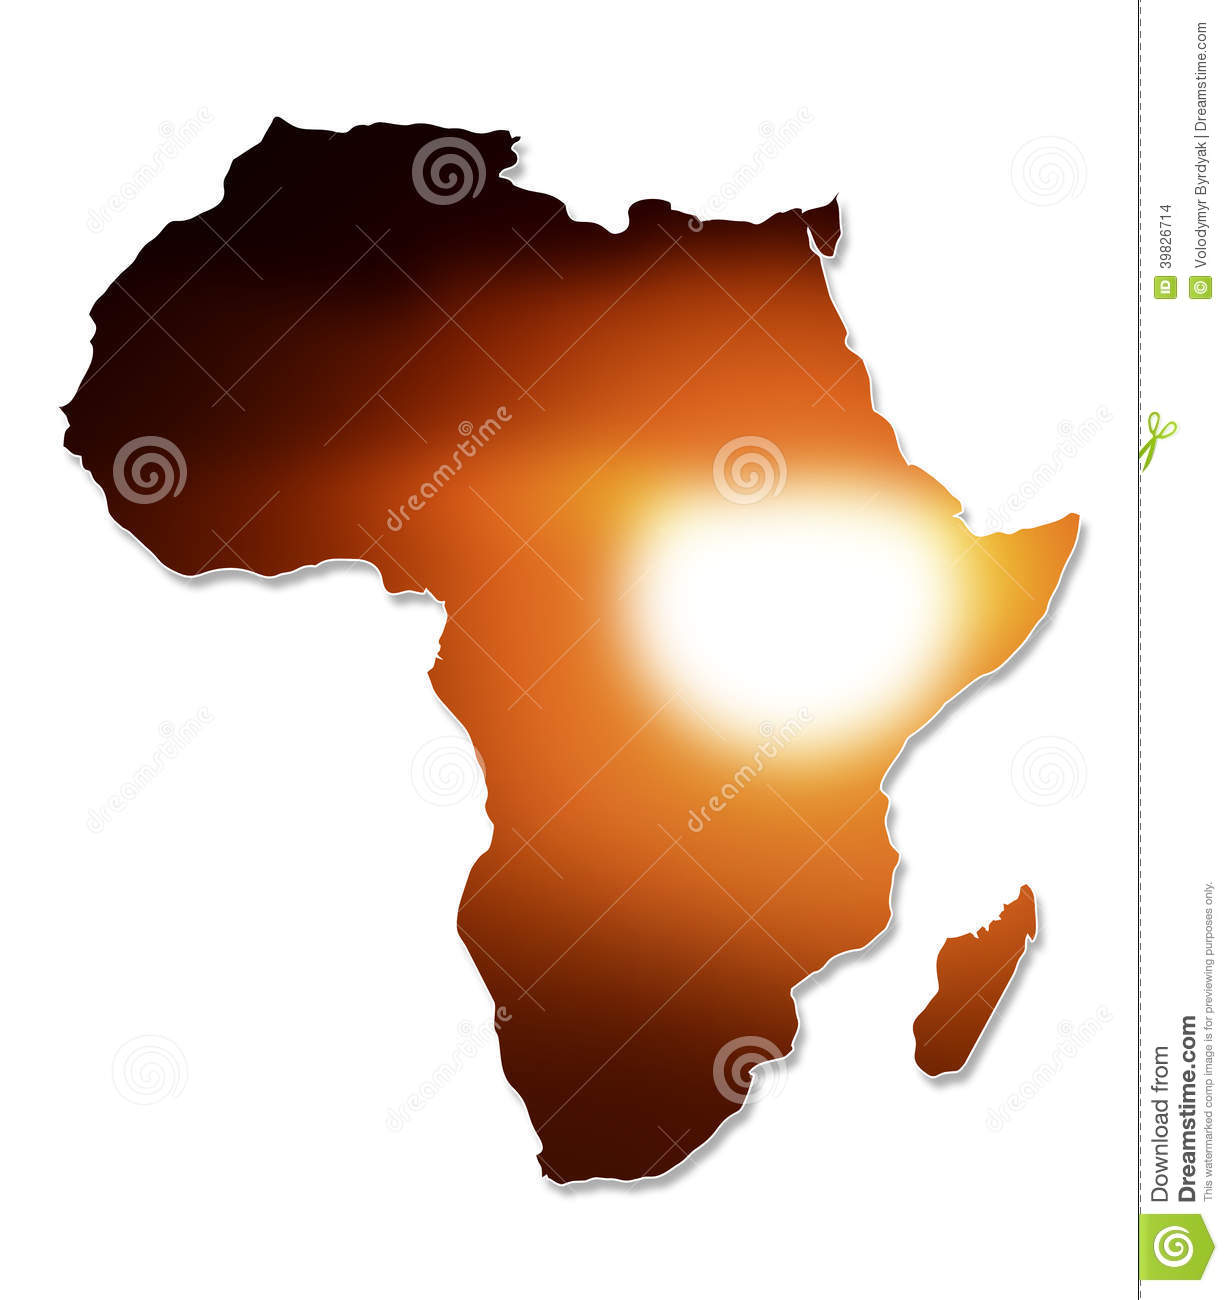 africa map art africa map design stock photo image 39826714 10025